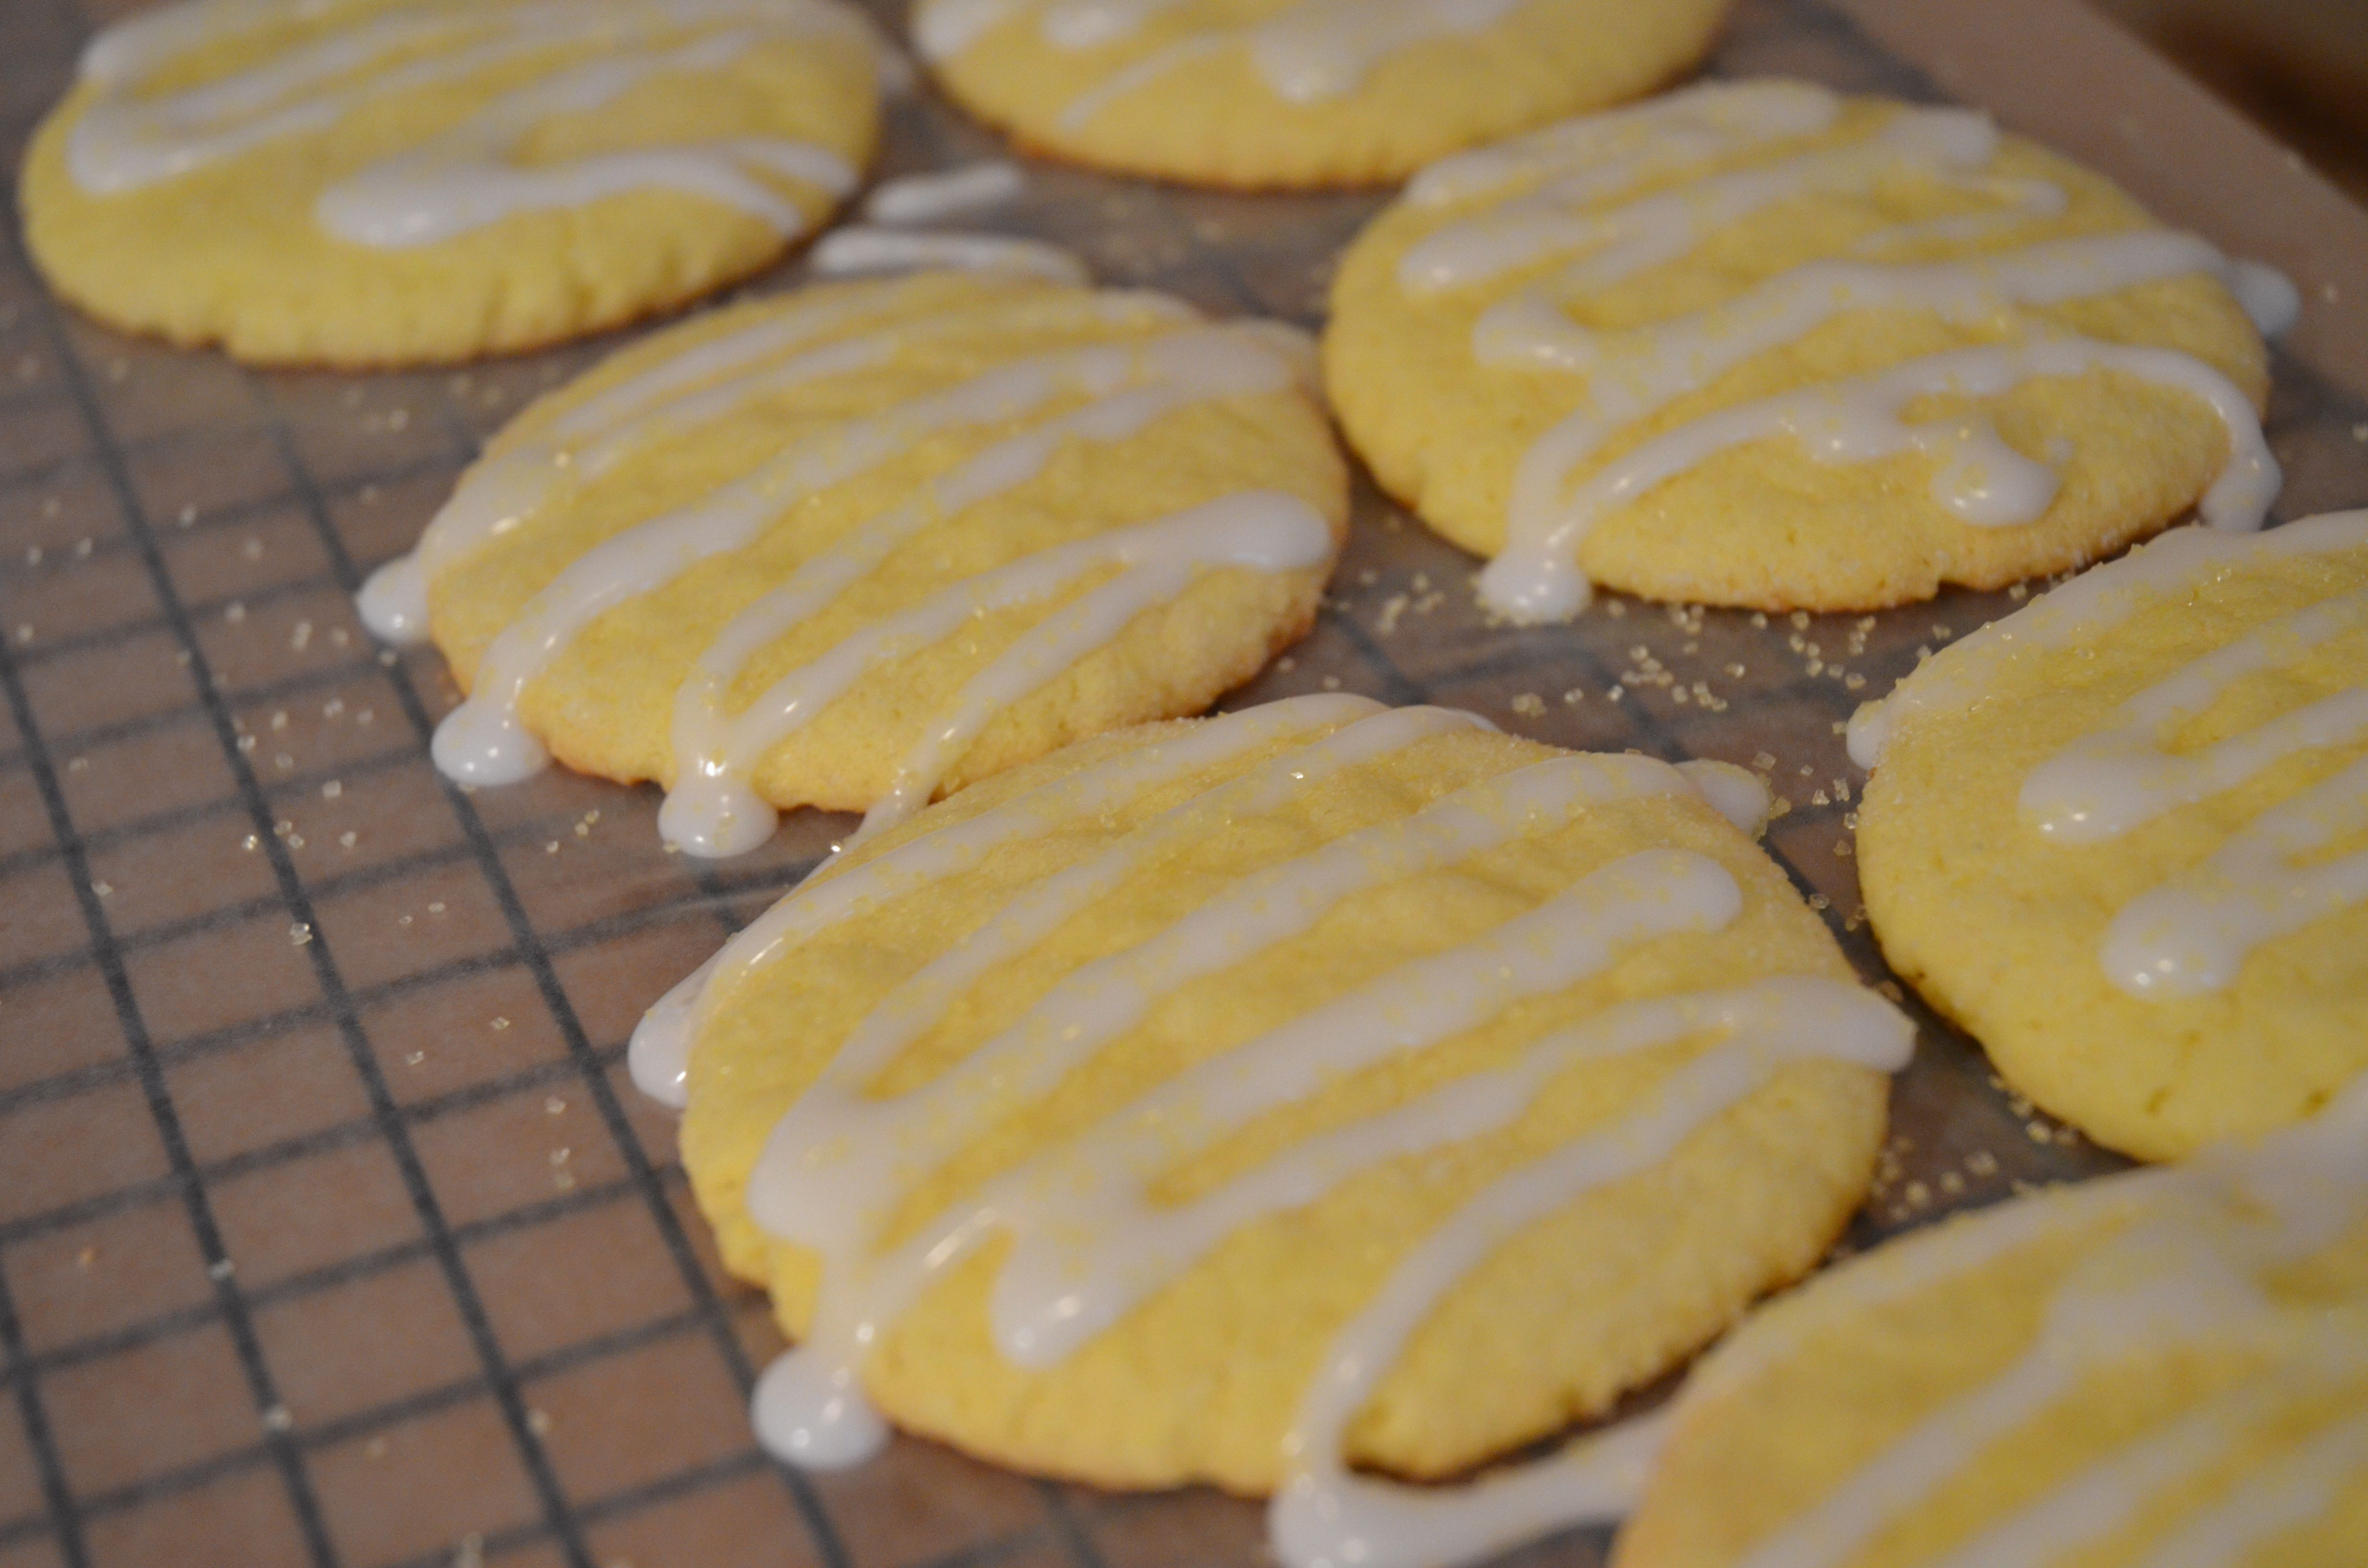 Lemon Cake Mix Cookies From Pillsbury Mix 1 Lemon Cake Mix 1 3 C Oil 2 Eggs Roll Into I Inch Balls And Lemon Cake Mix Cookies Cake Mix Cookies Cake Mix